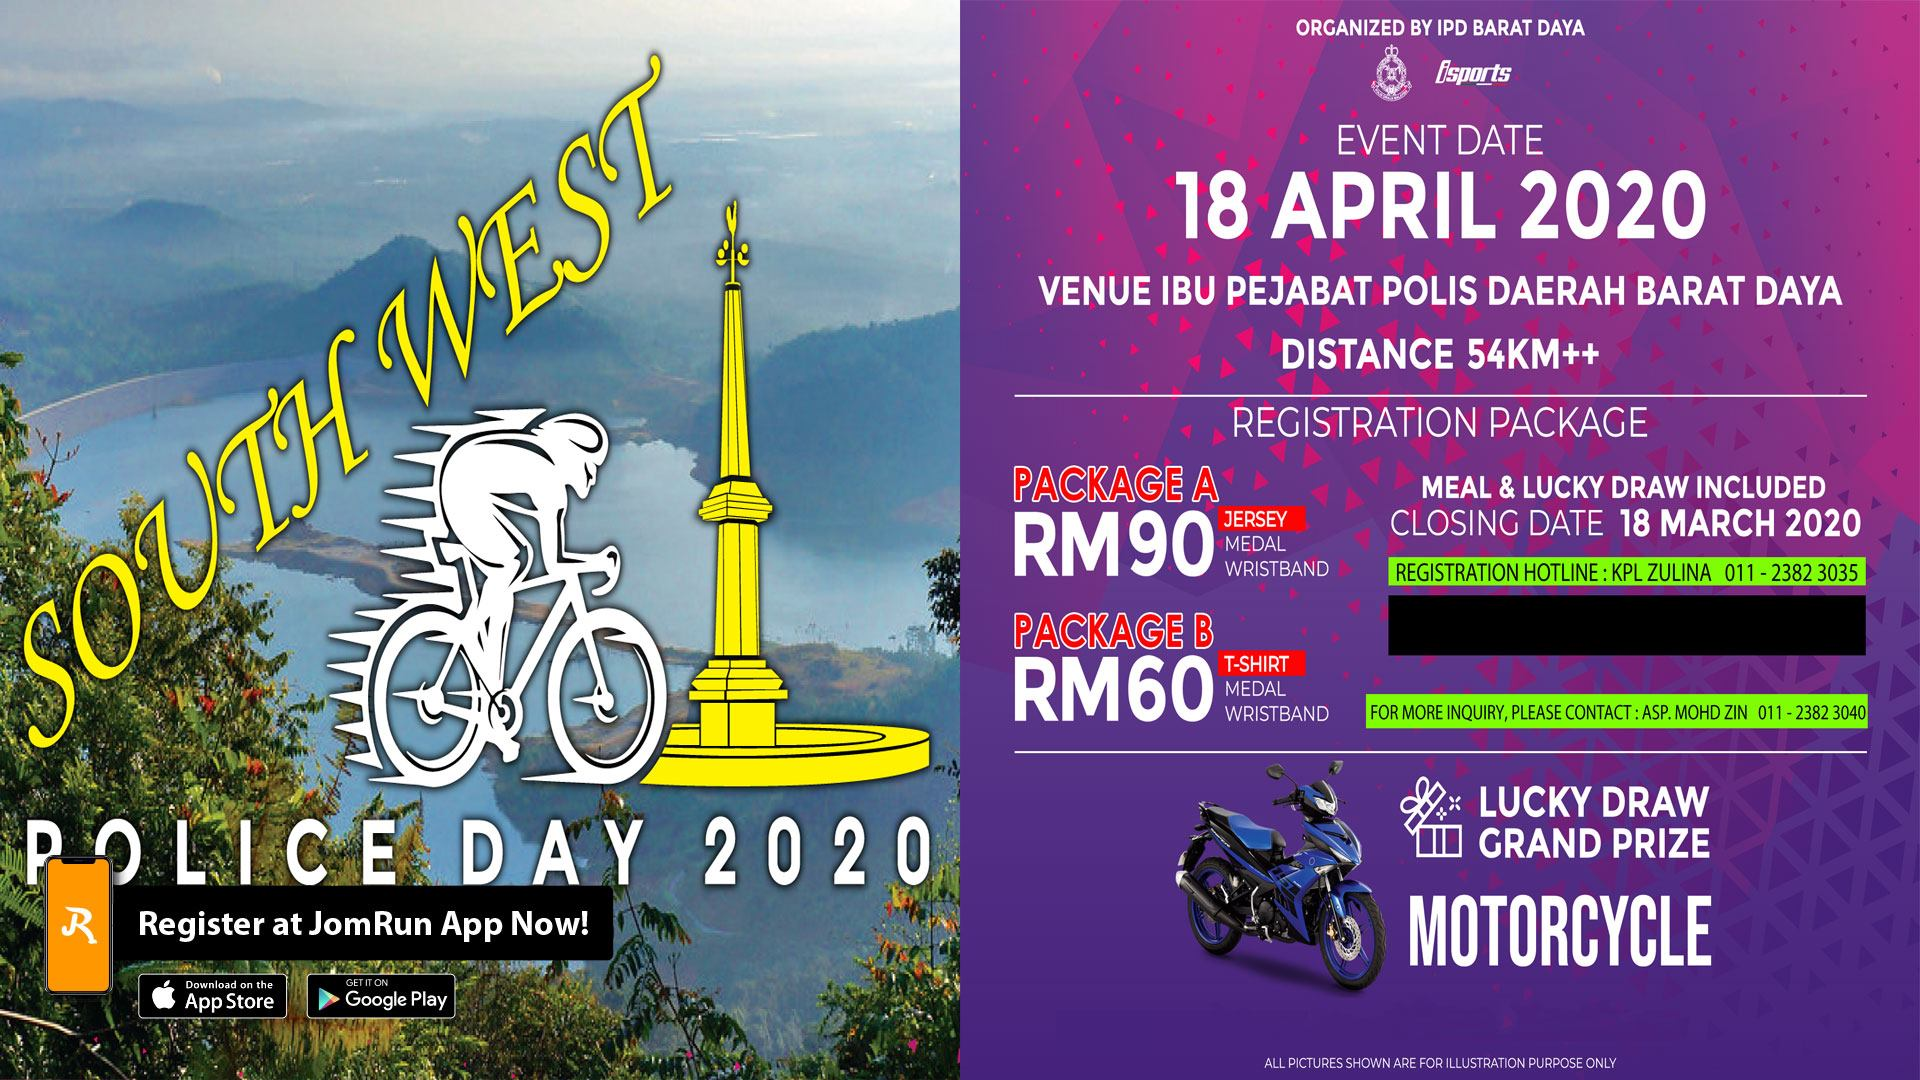 South West Police Day 2020